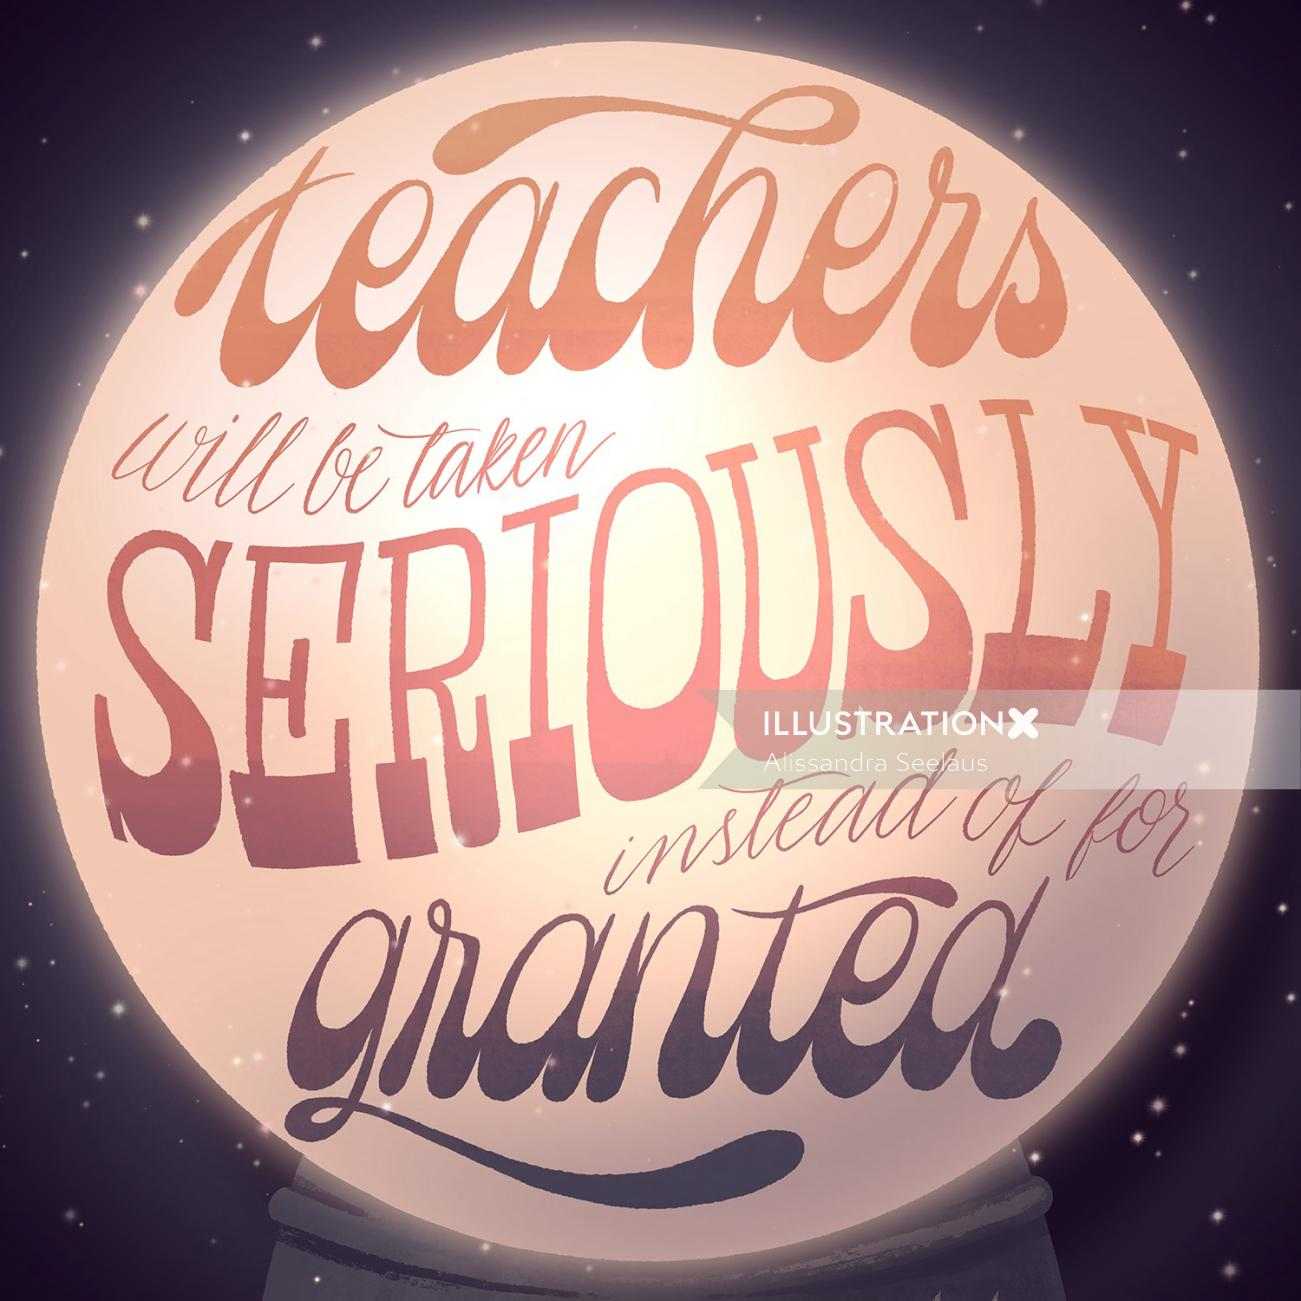 Teachers will be take seriously instead of for granted